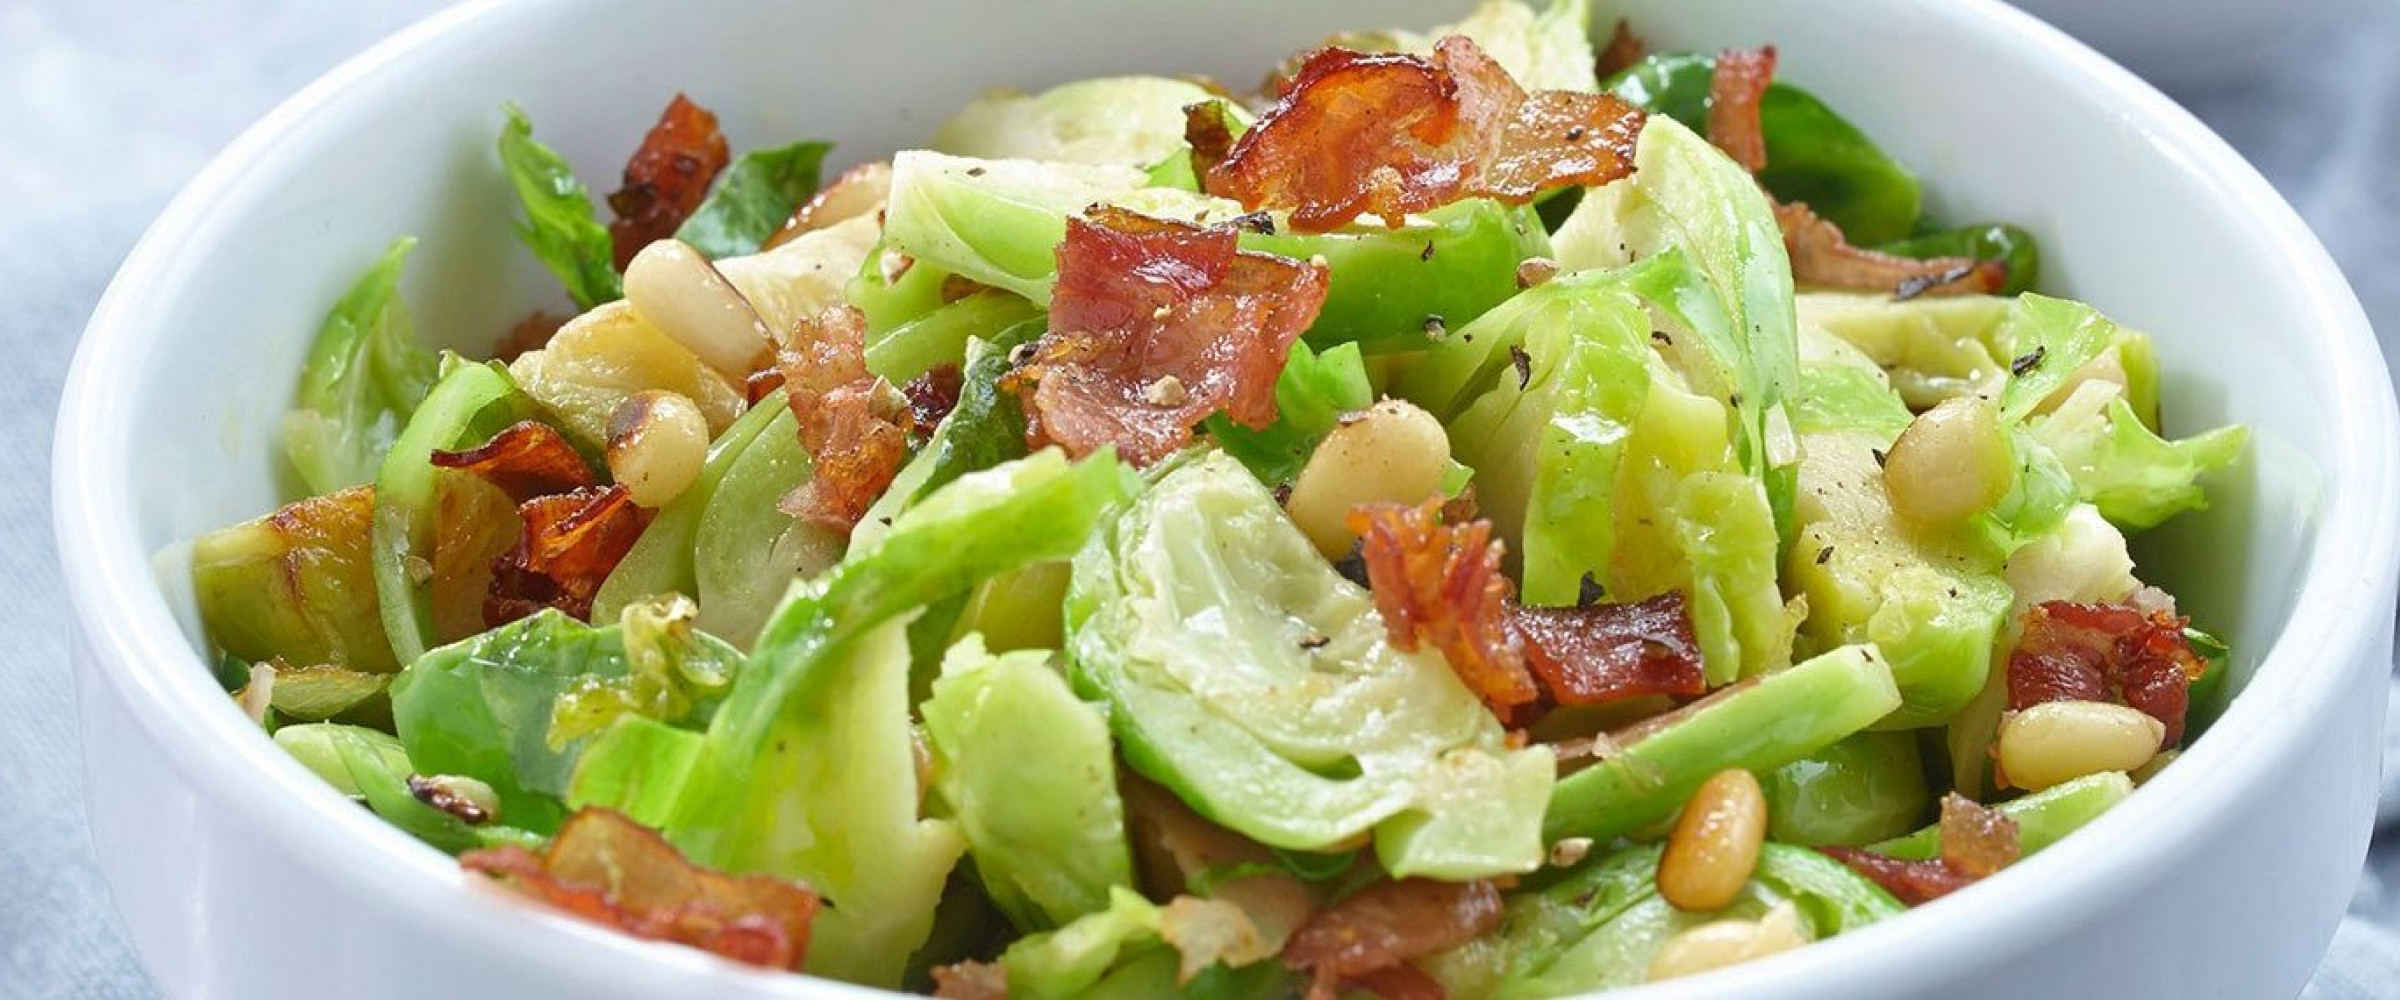 Brussel Sprouts shredded with Speck Prosciutto in a white bowl